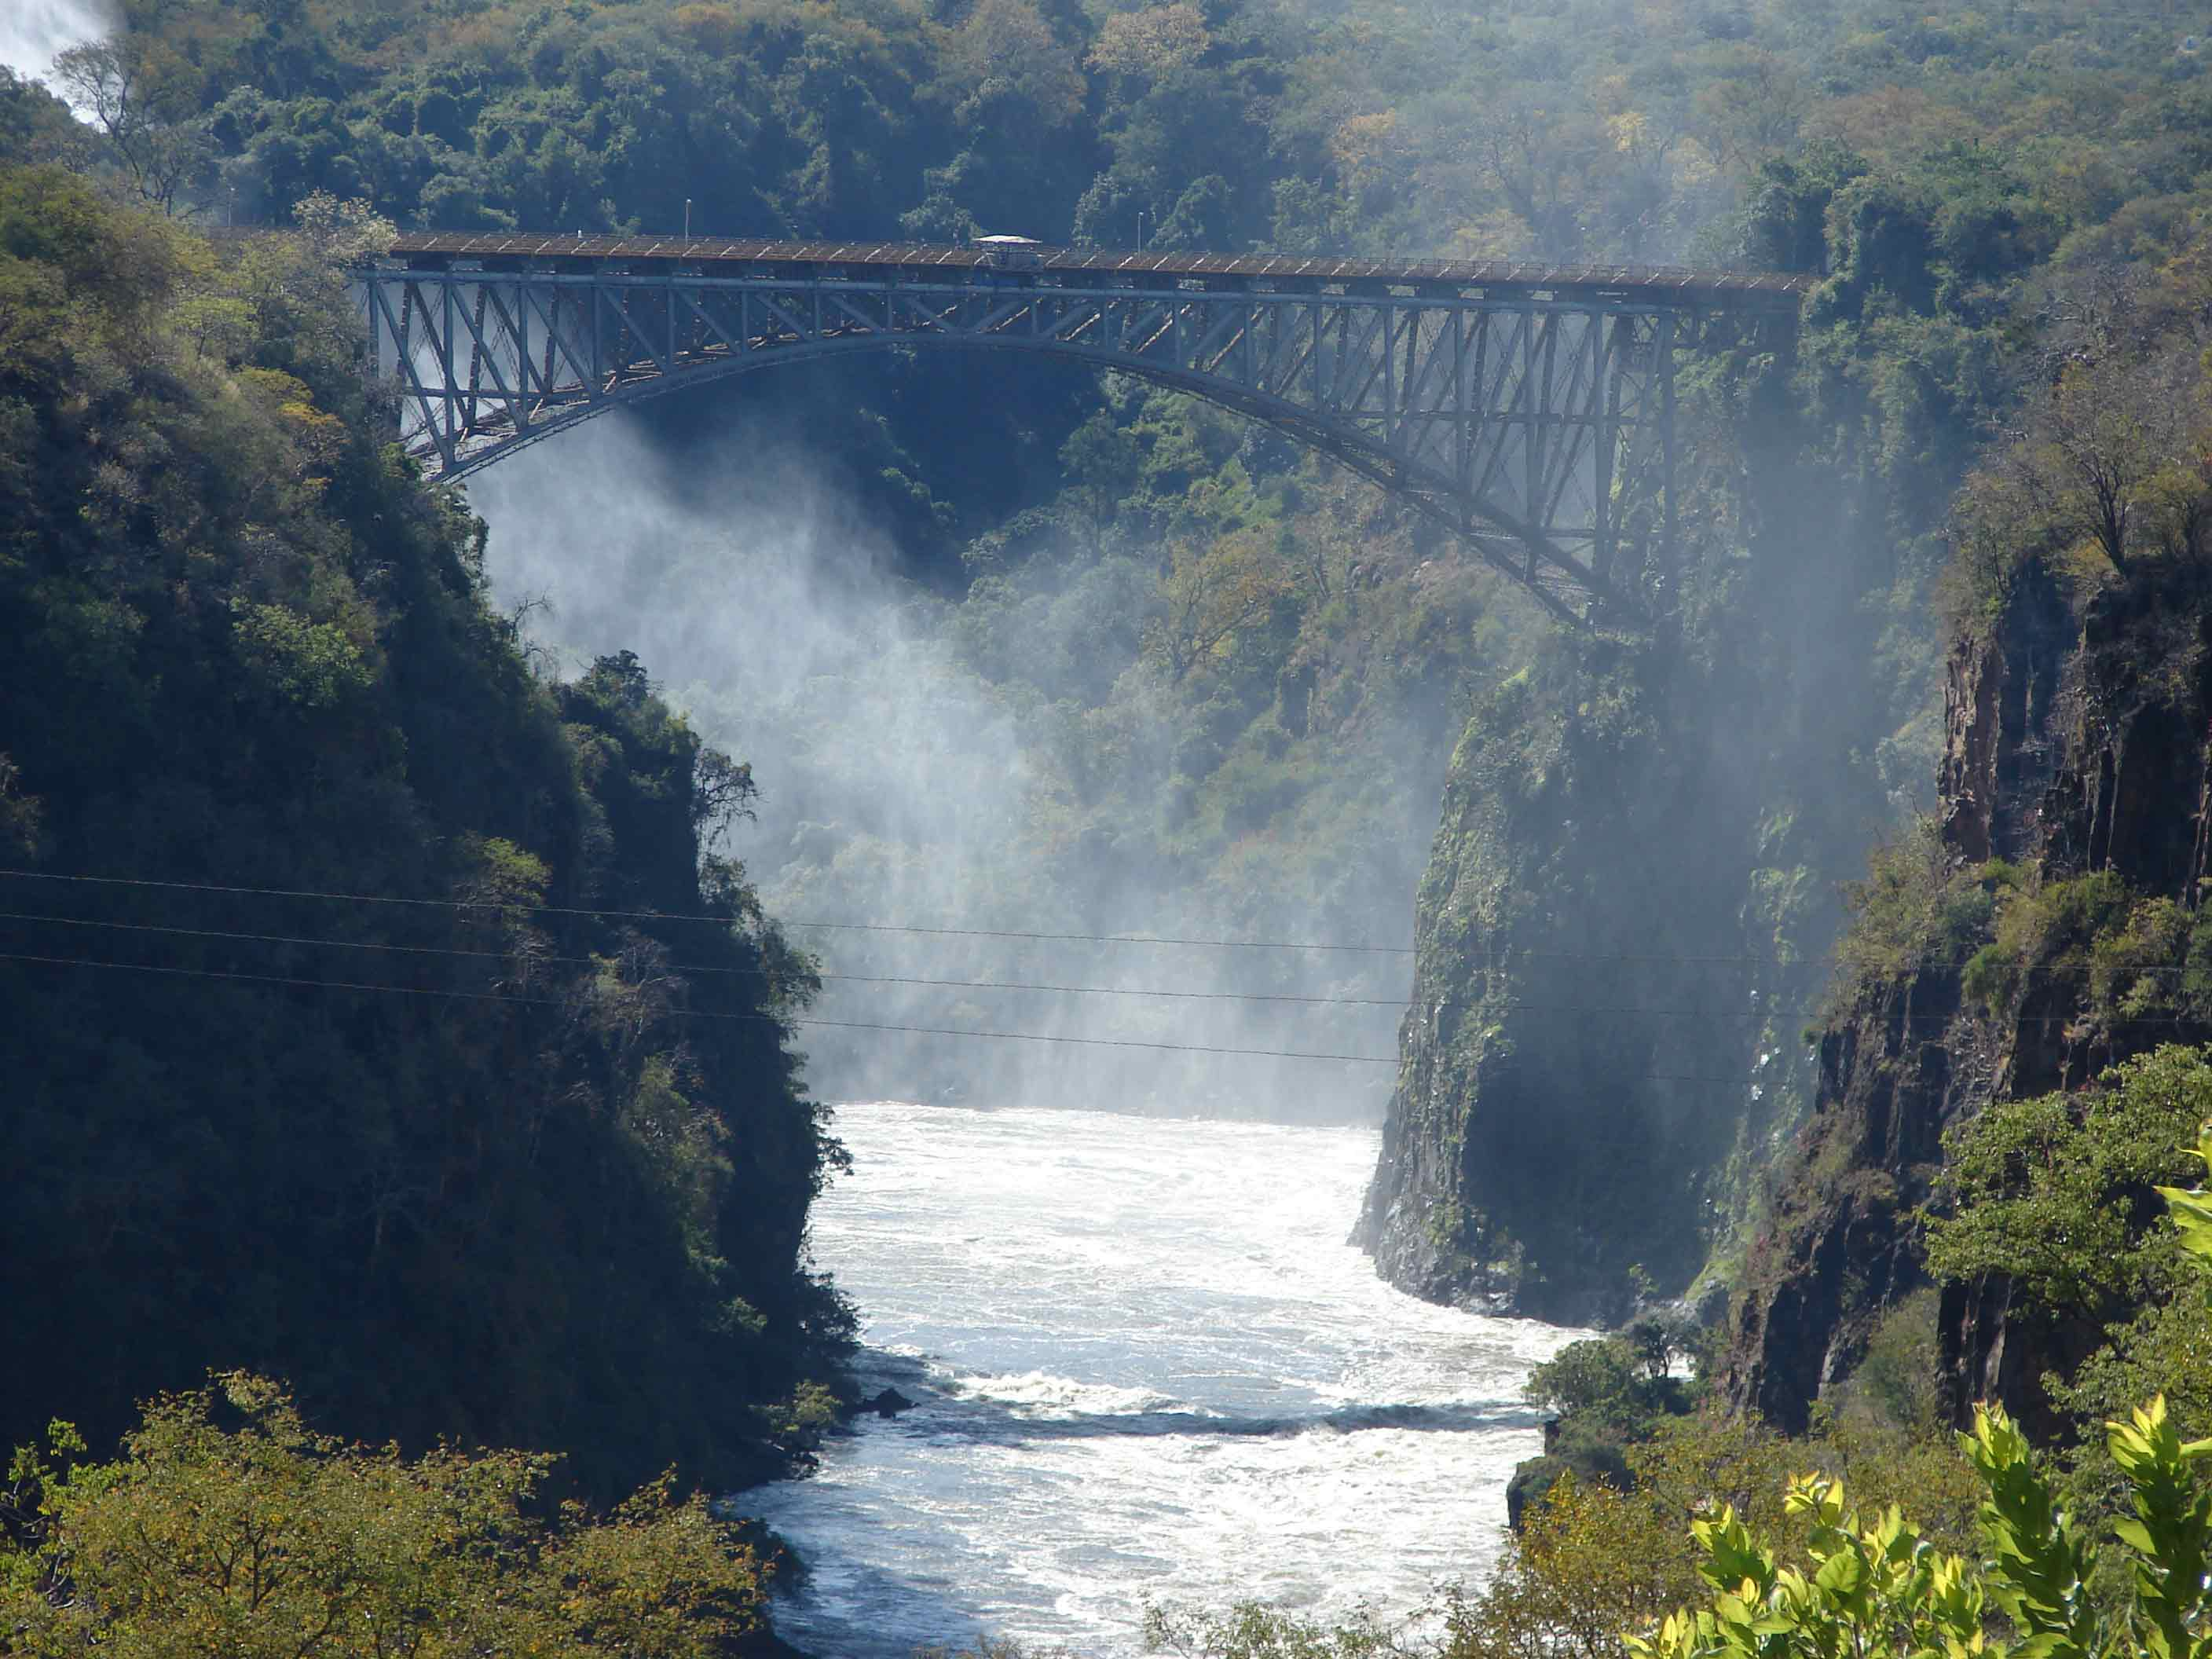 photo: Victoria Falls Bridge © Peter Kuthan